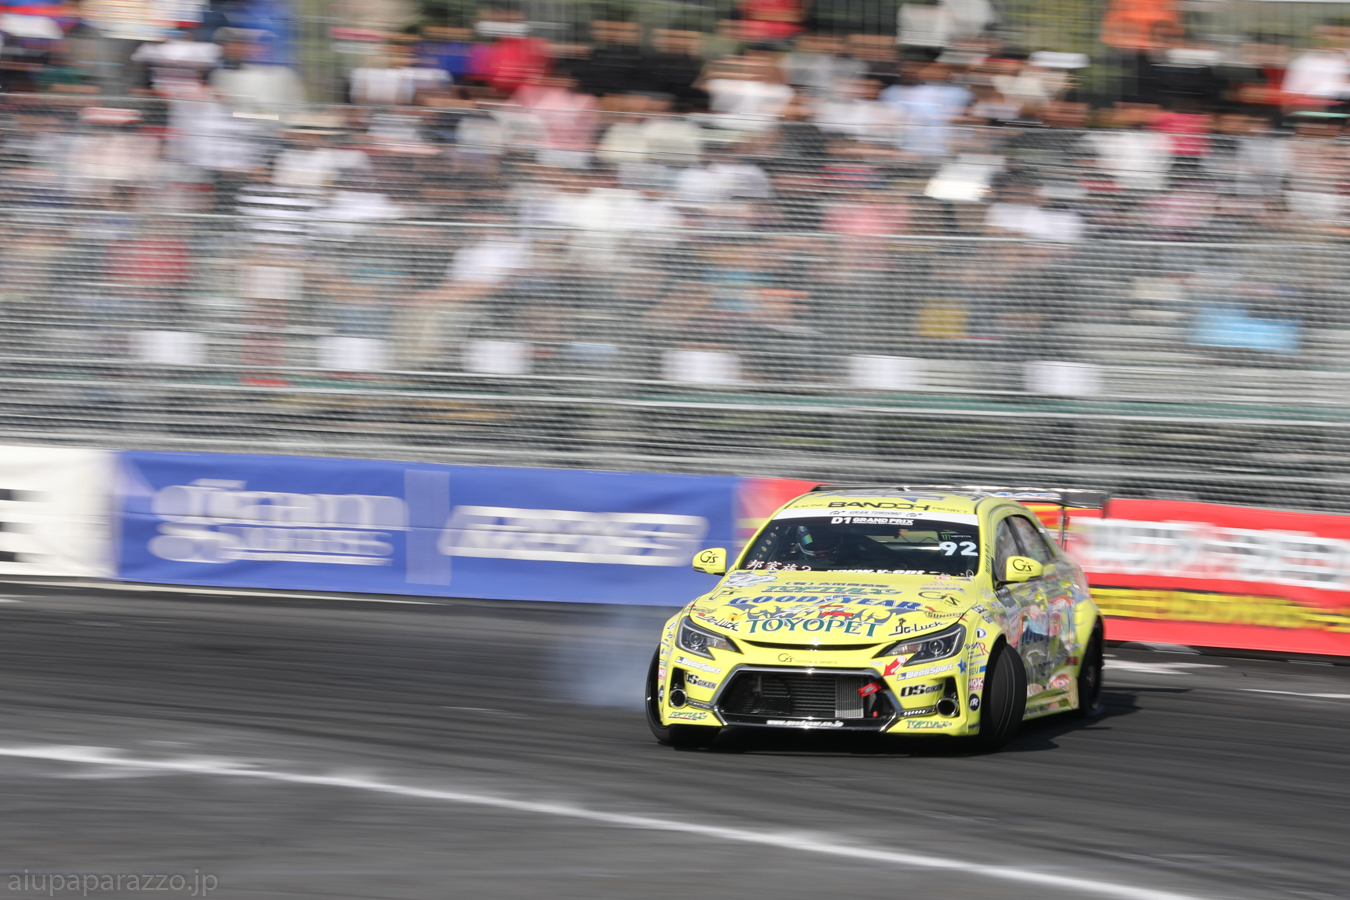 d1gp_tan2016lap3-38.jpg